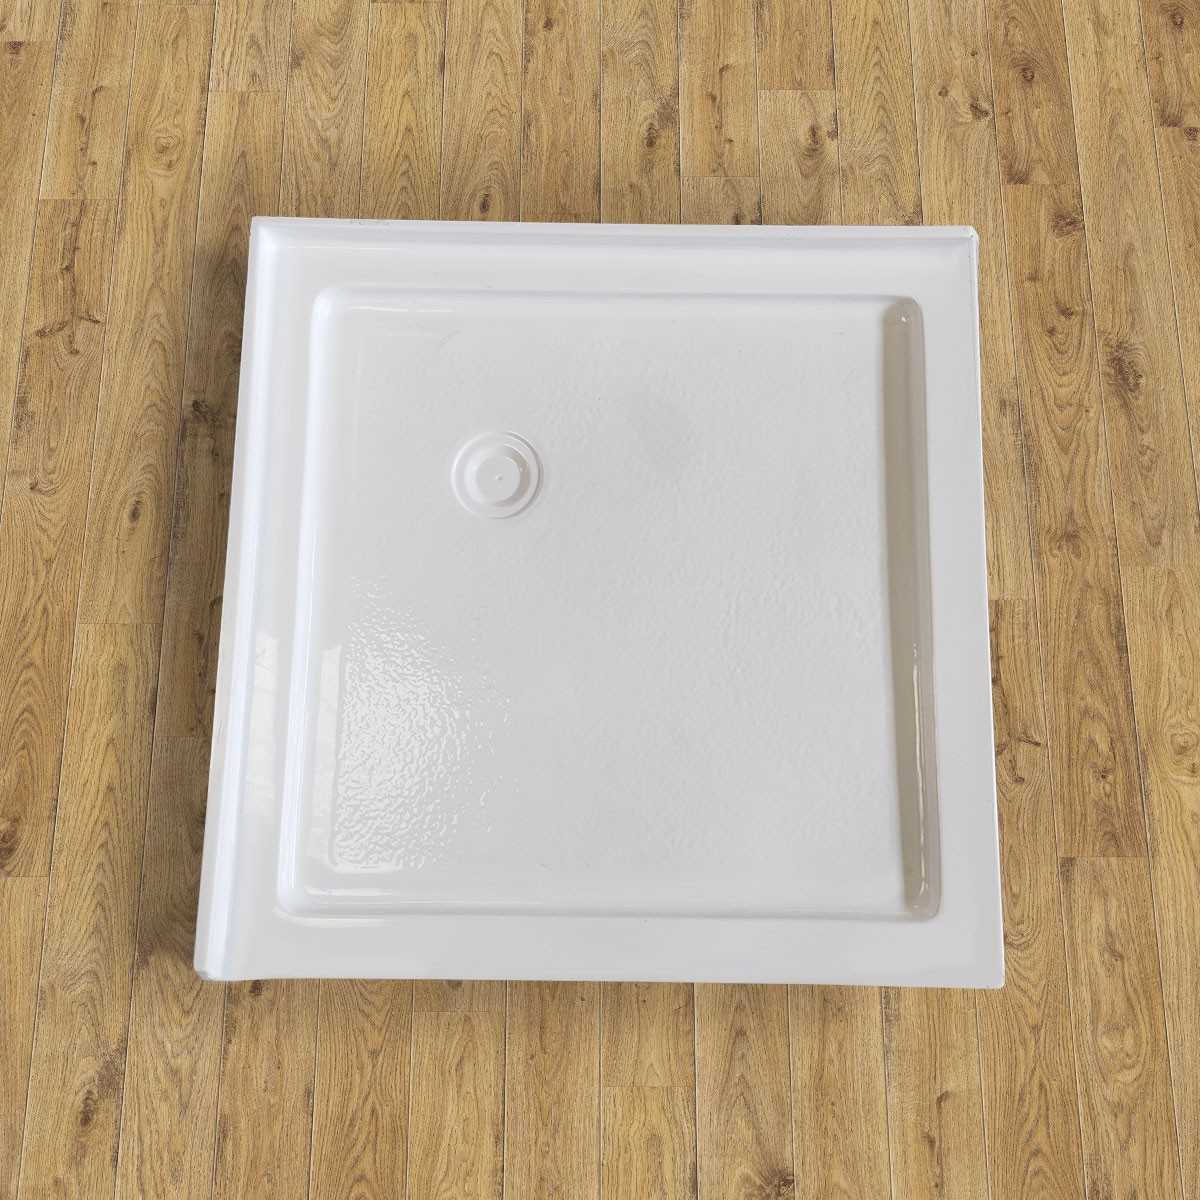 36 x 36 In Square Shower Base with Tiling Flanges (DK-T202)